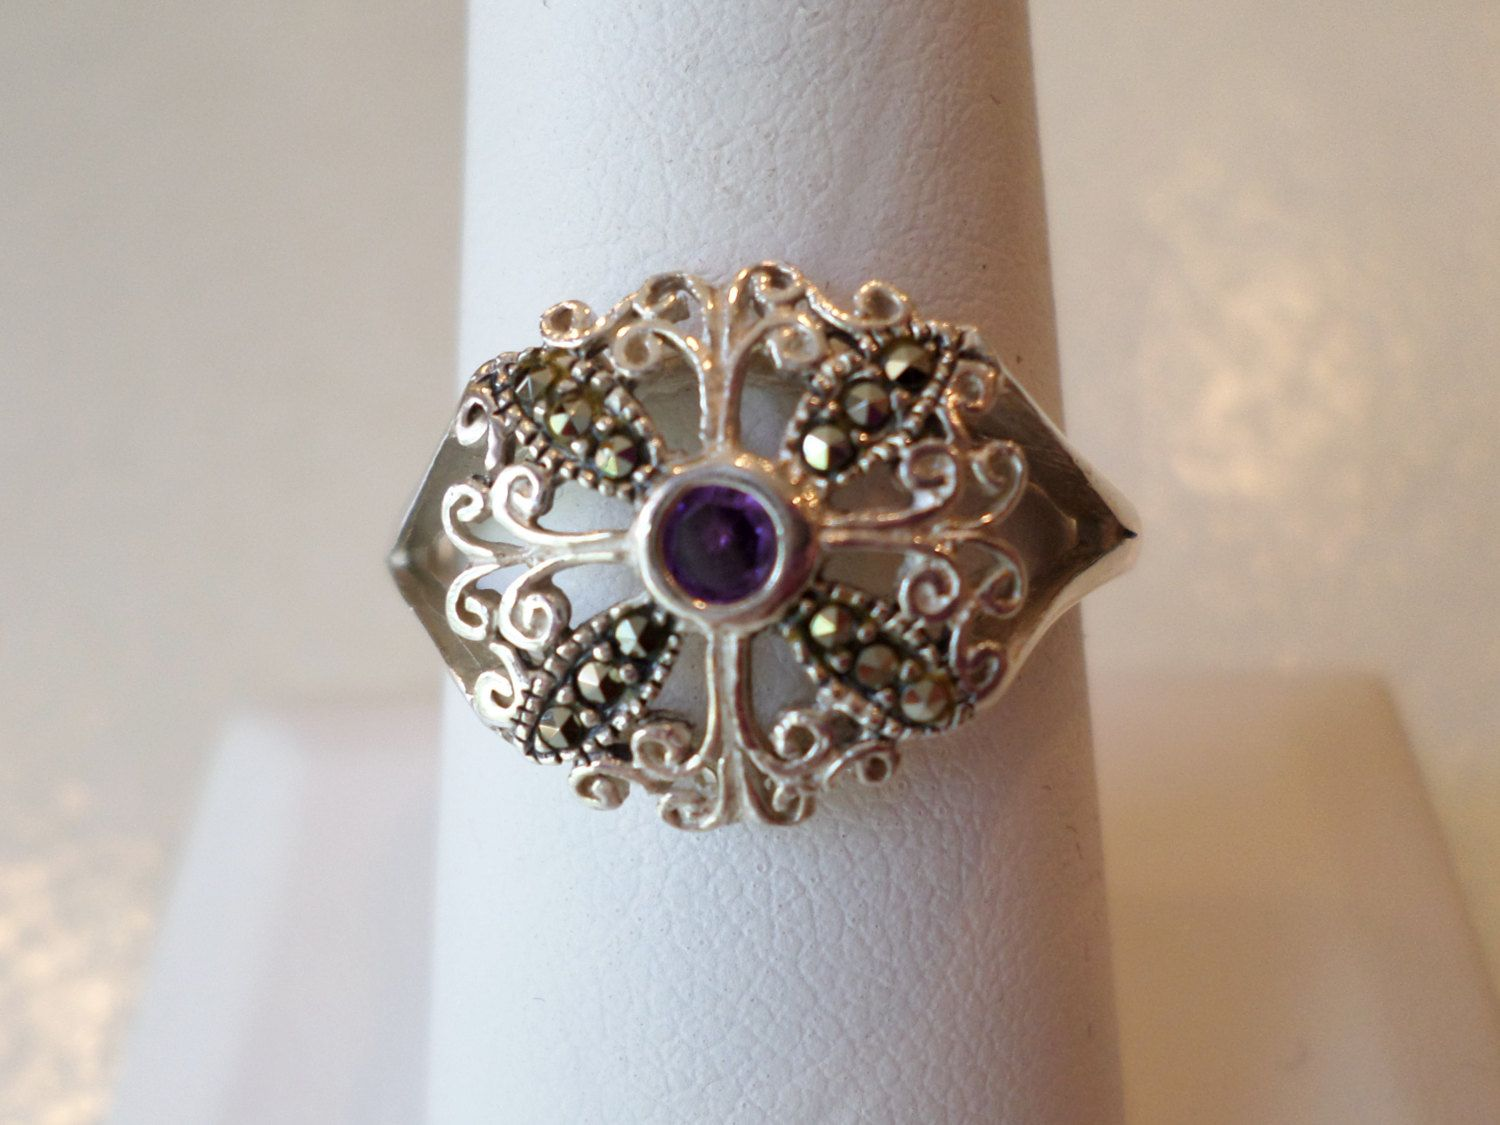 Signed MWD 925 Sterling Silver Real Amethyst Rhombus and Swirl Design Ring Size 4